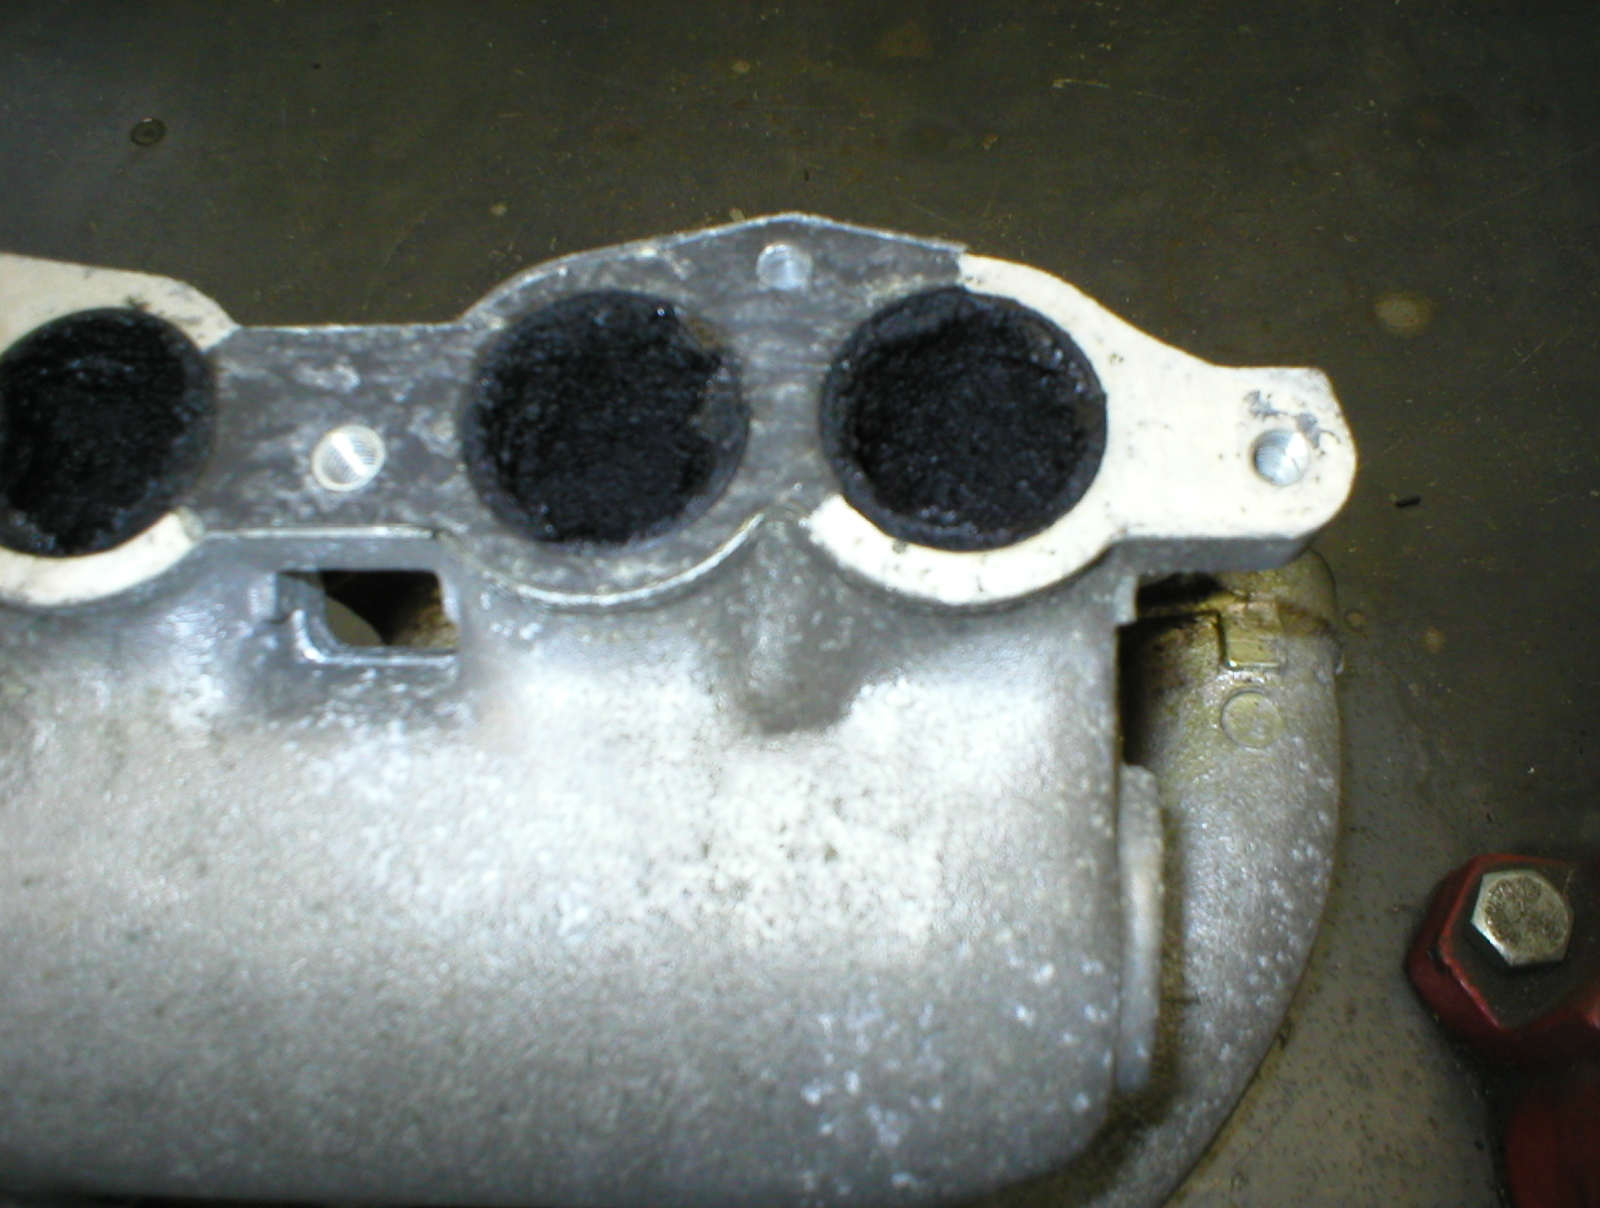 Nissandiesel Forums View Topic Ld2x Series Diesel Faq Nissan Ld28 Engine Schematics I Tried Cleaning The Intake Manifold Halves Via Normal Methods But Got Lazy And Eventually Sent Them Off To Be Professionally Cleaned By An Automotive